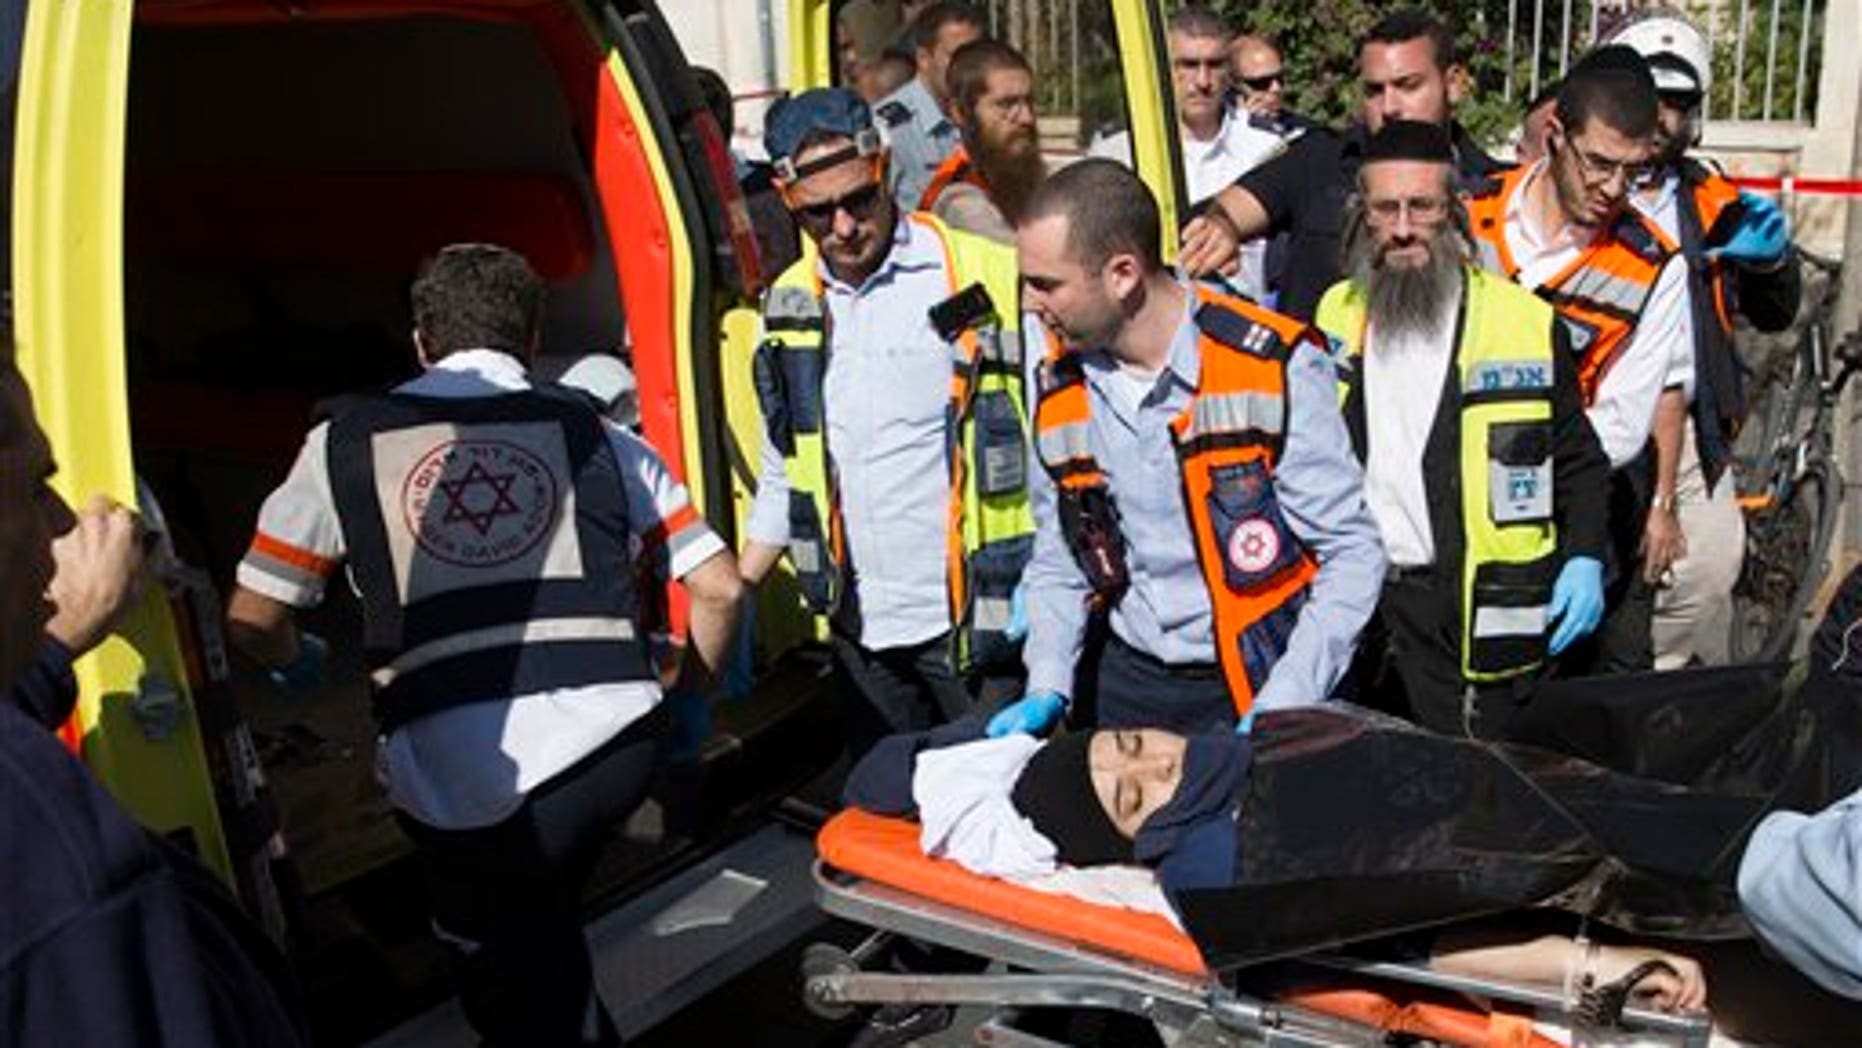 Israeli medics move a handcuffed Palestinian woman, who police believe attacked a man, at the scene of a stabbing attack in Jerusalem, Monday, Nov. 23, 2015. (AP Photo/Sebastian Scheiner)